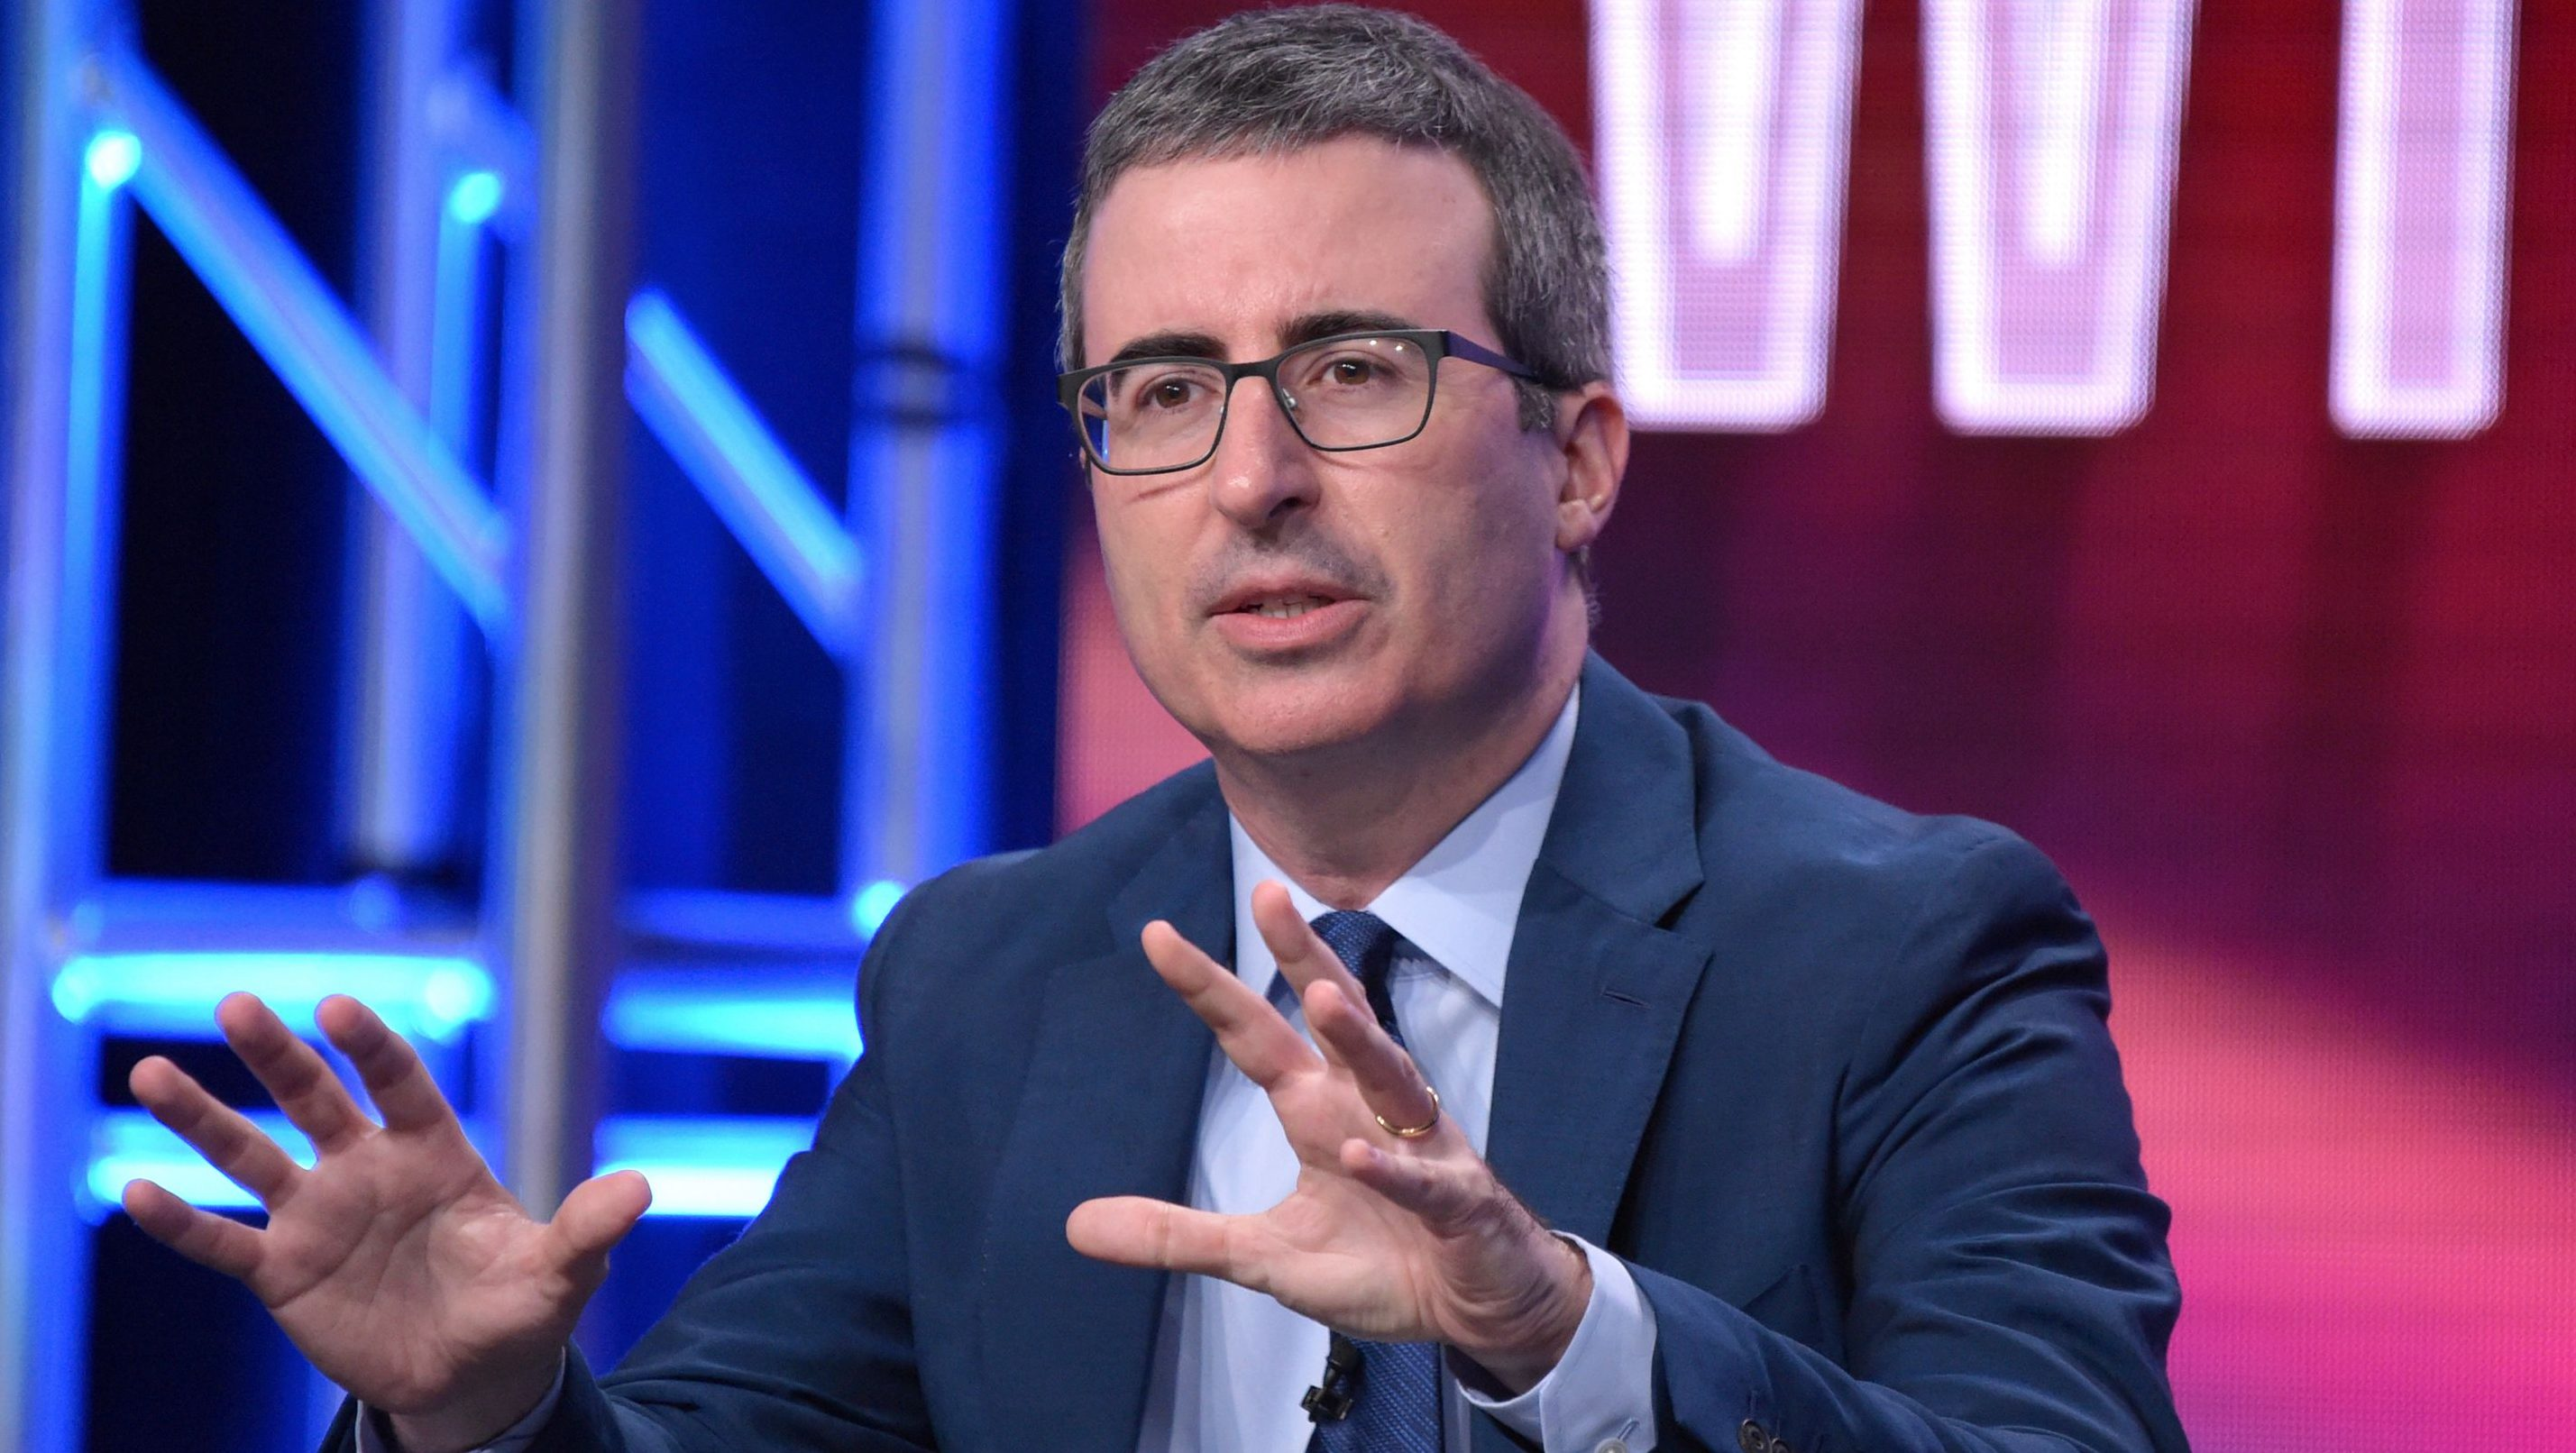 John Oliver's rules of engagement for internet shaming and call-out culture